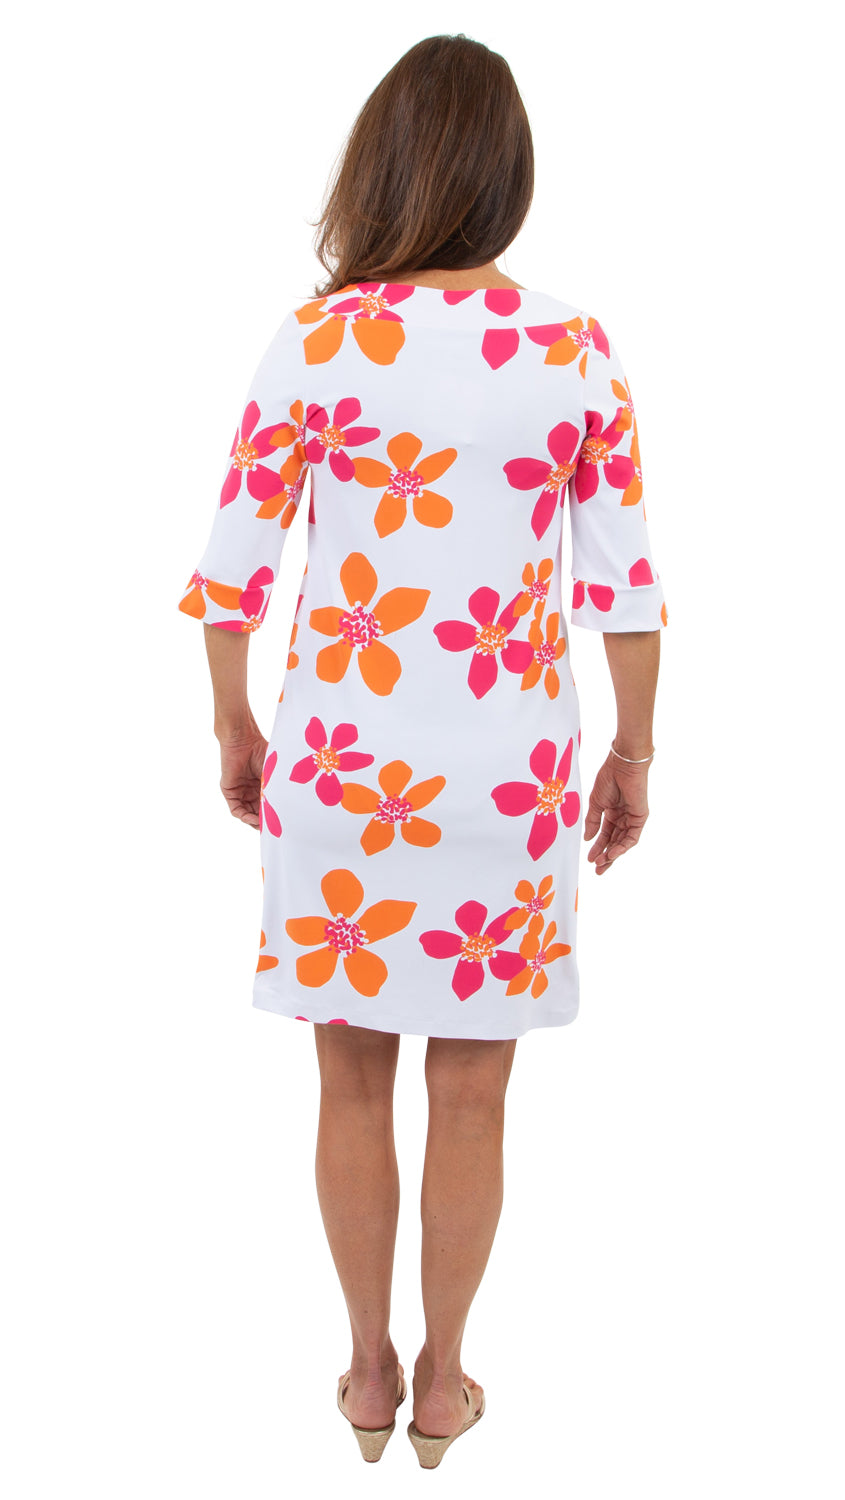 Yacht Club Shift 3/4 Sleeve - Pink/Orange Spring Flora